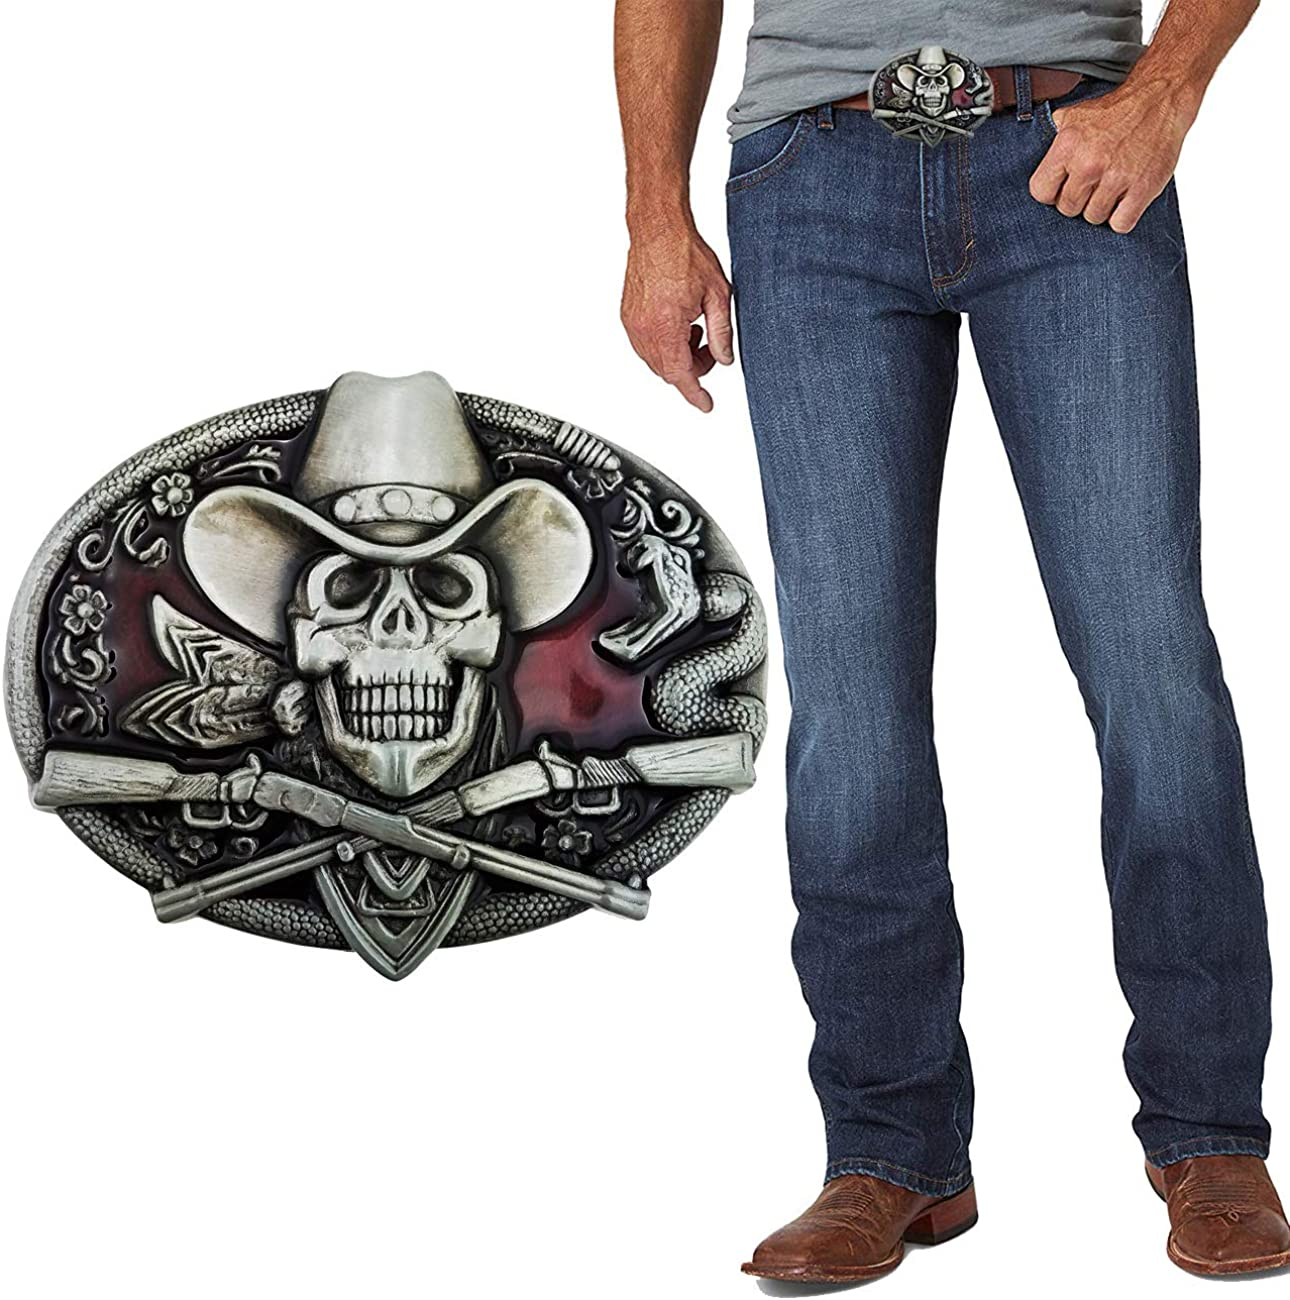 New product! New type XGALA Skull Head Belt Buckle Max 86% OFF Cowboy Mens For Western